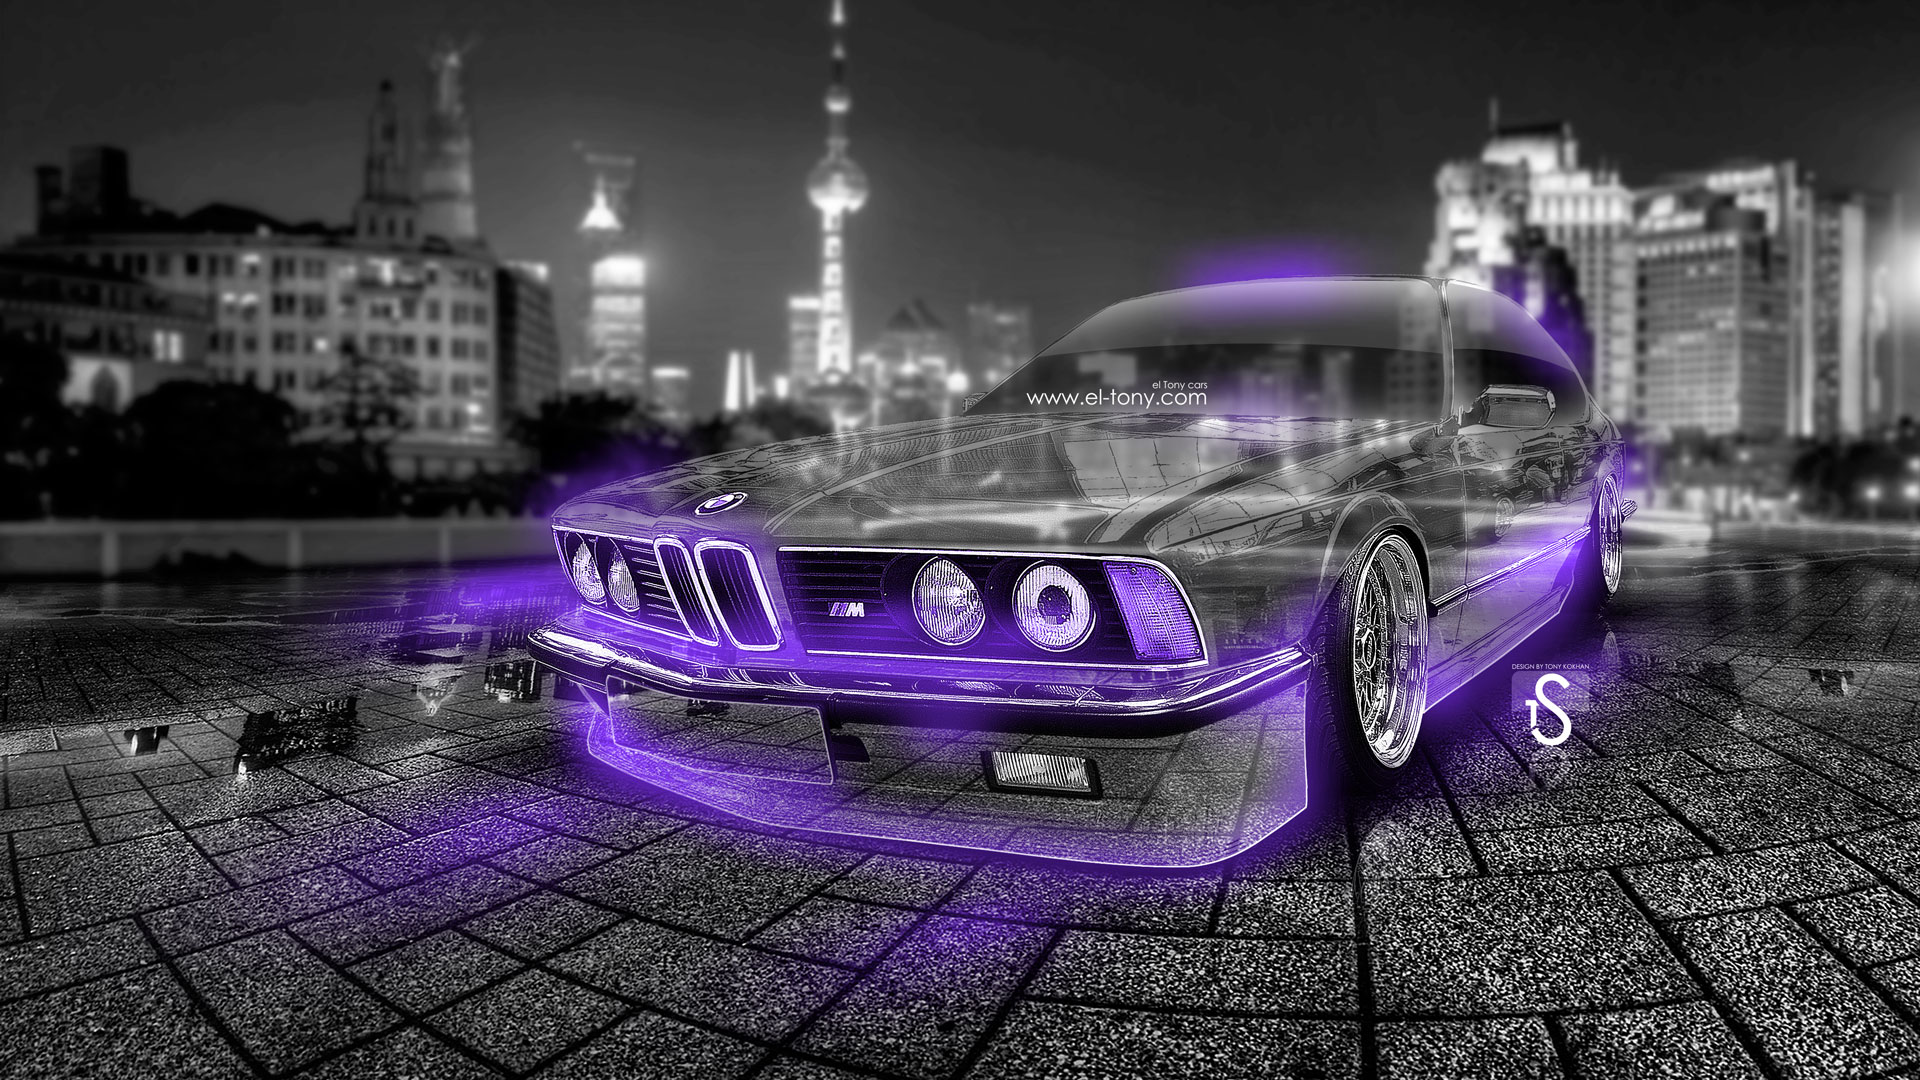 Gentil BMW Retro Crystal City Car 2014 Violet Neon